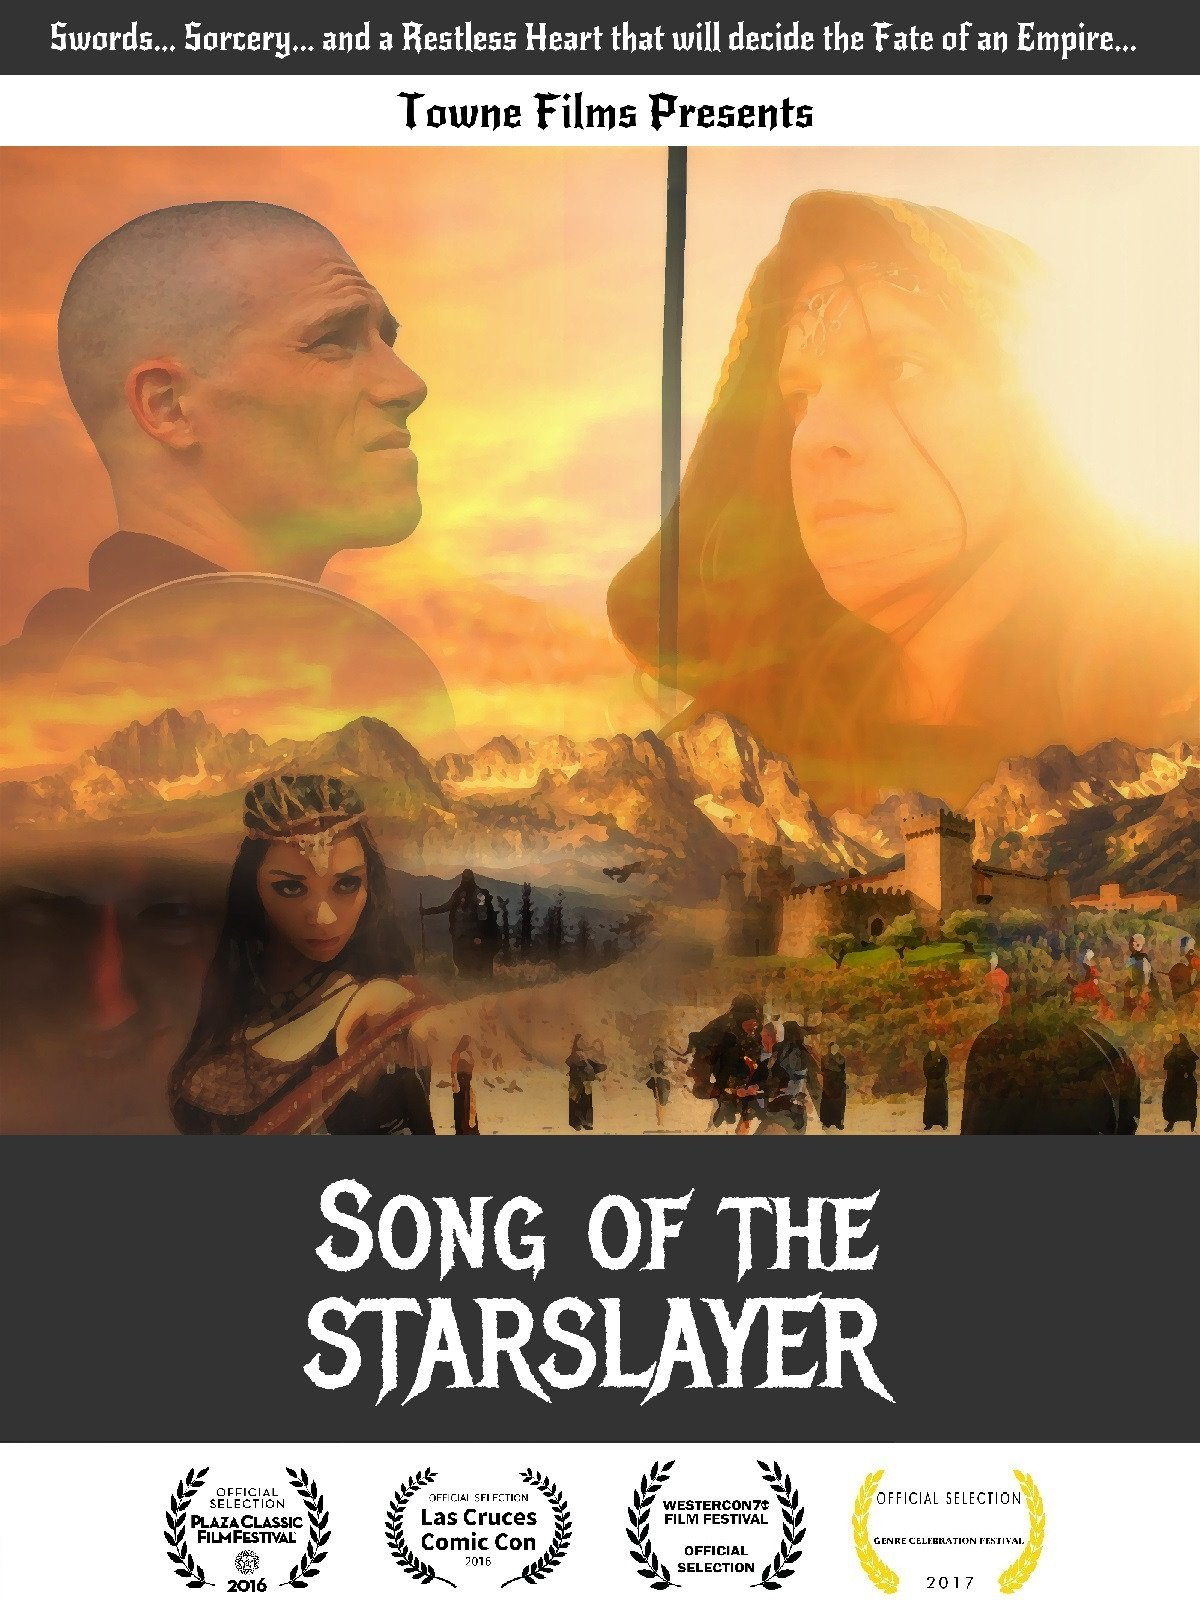 Song of the Starslayer